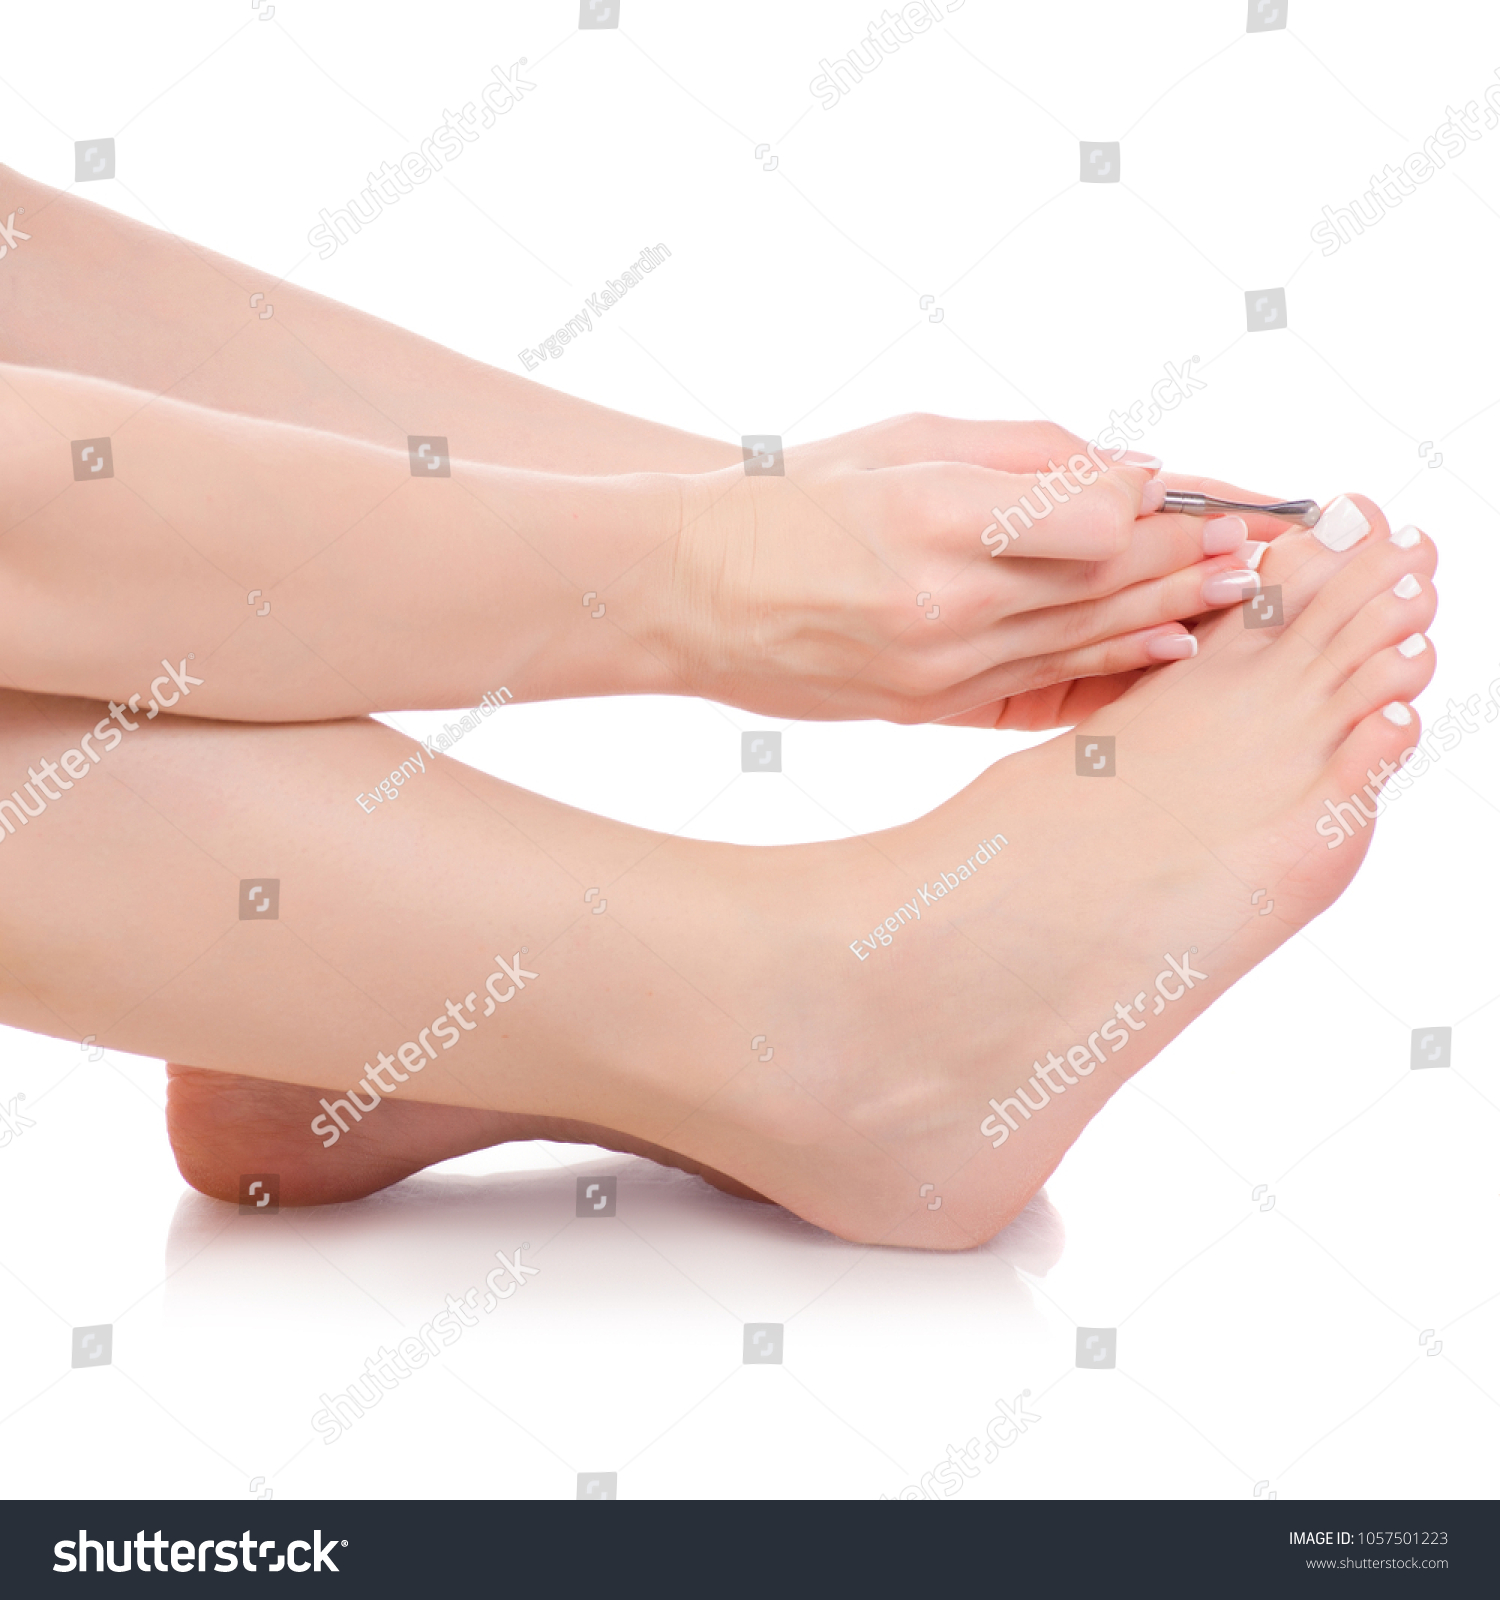 Female Feet Legs Pusher Nails Hands Stock Photo (Royalty Free ...